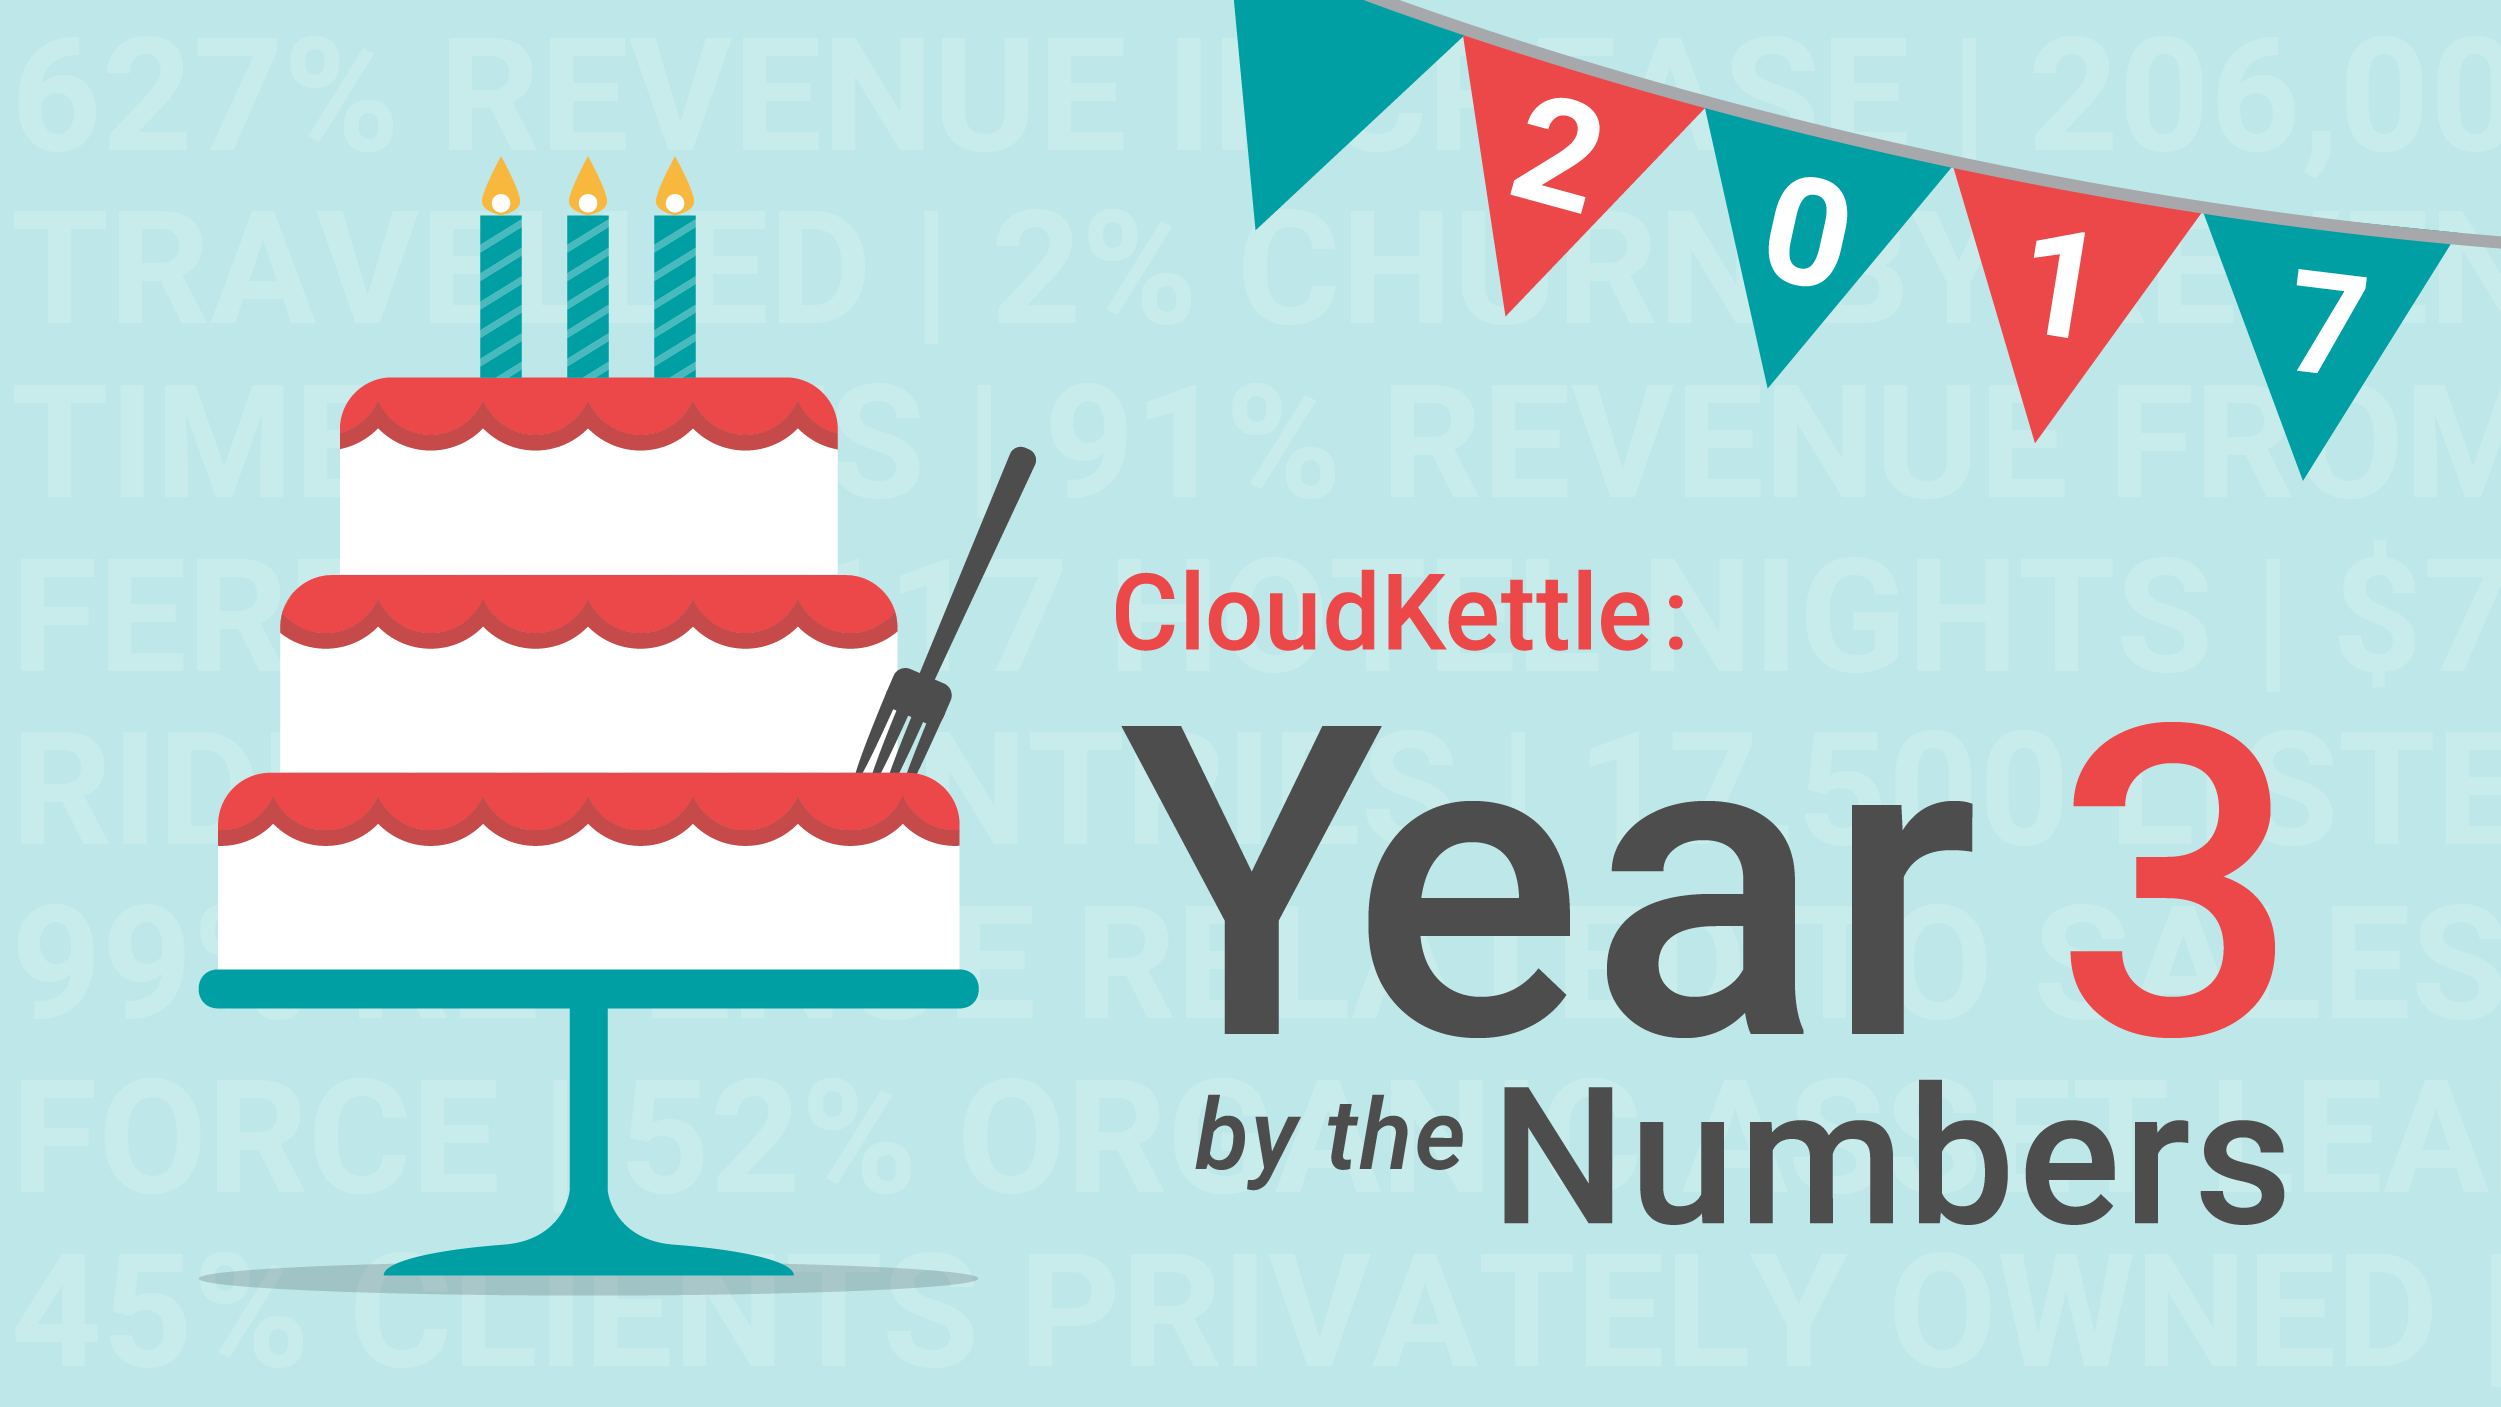 CloudKettle: Year 3 by the Numbers